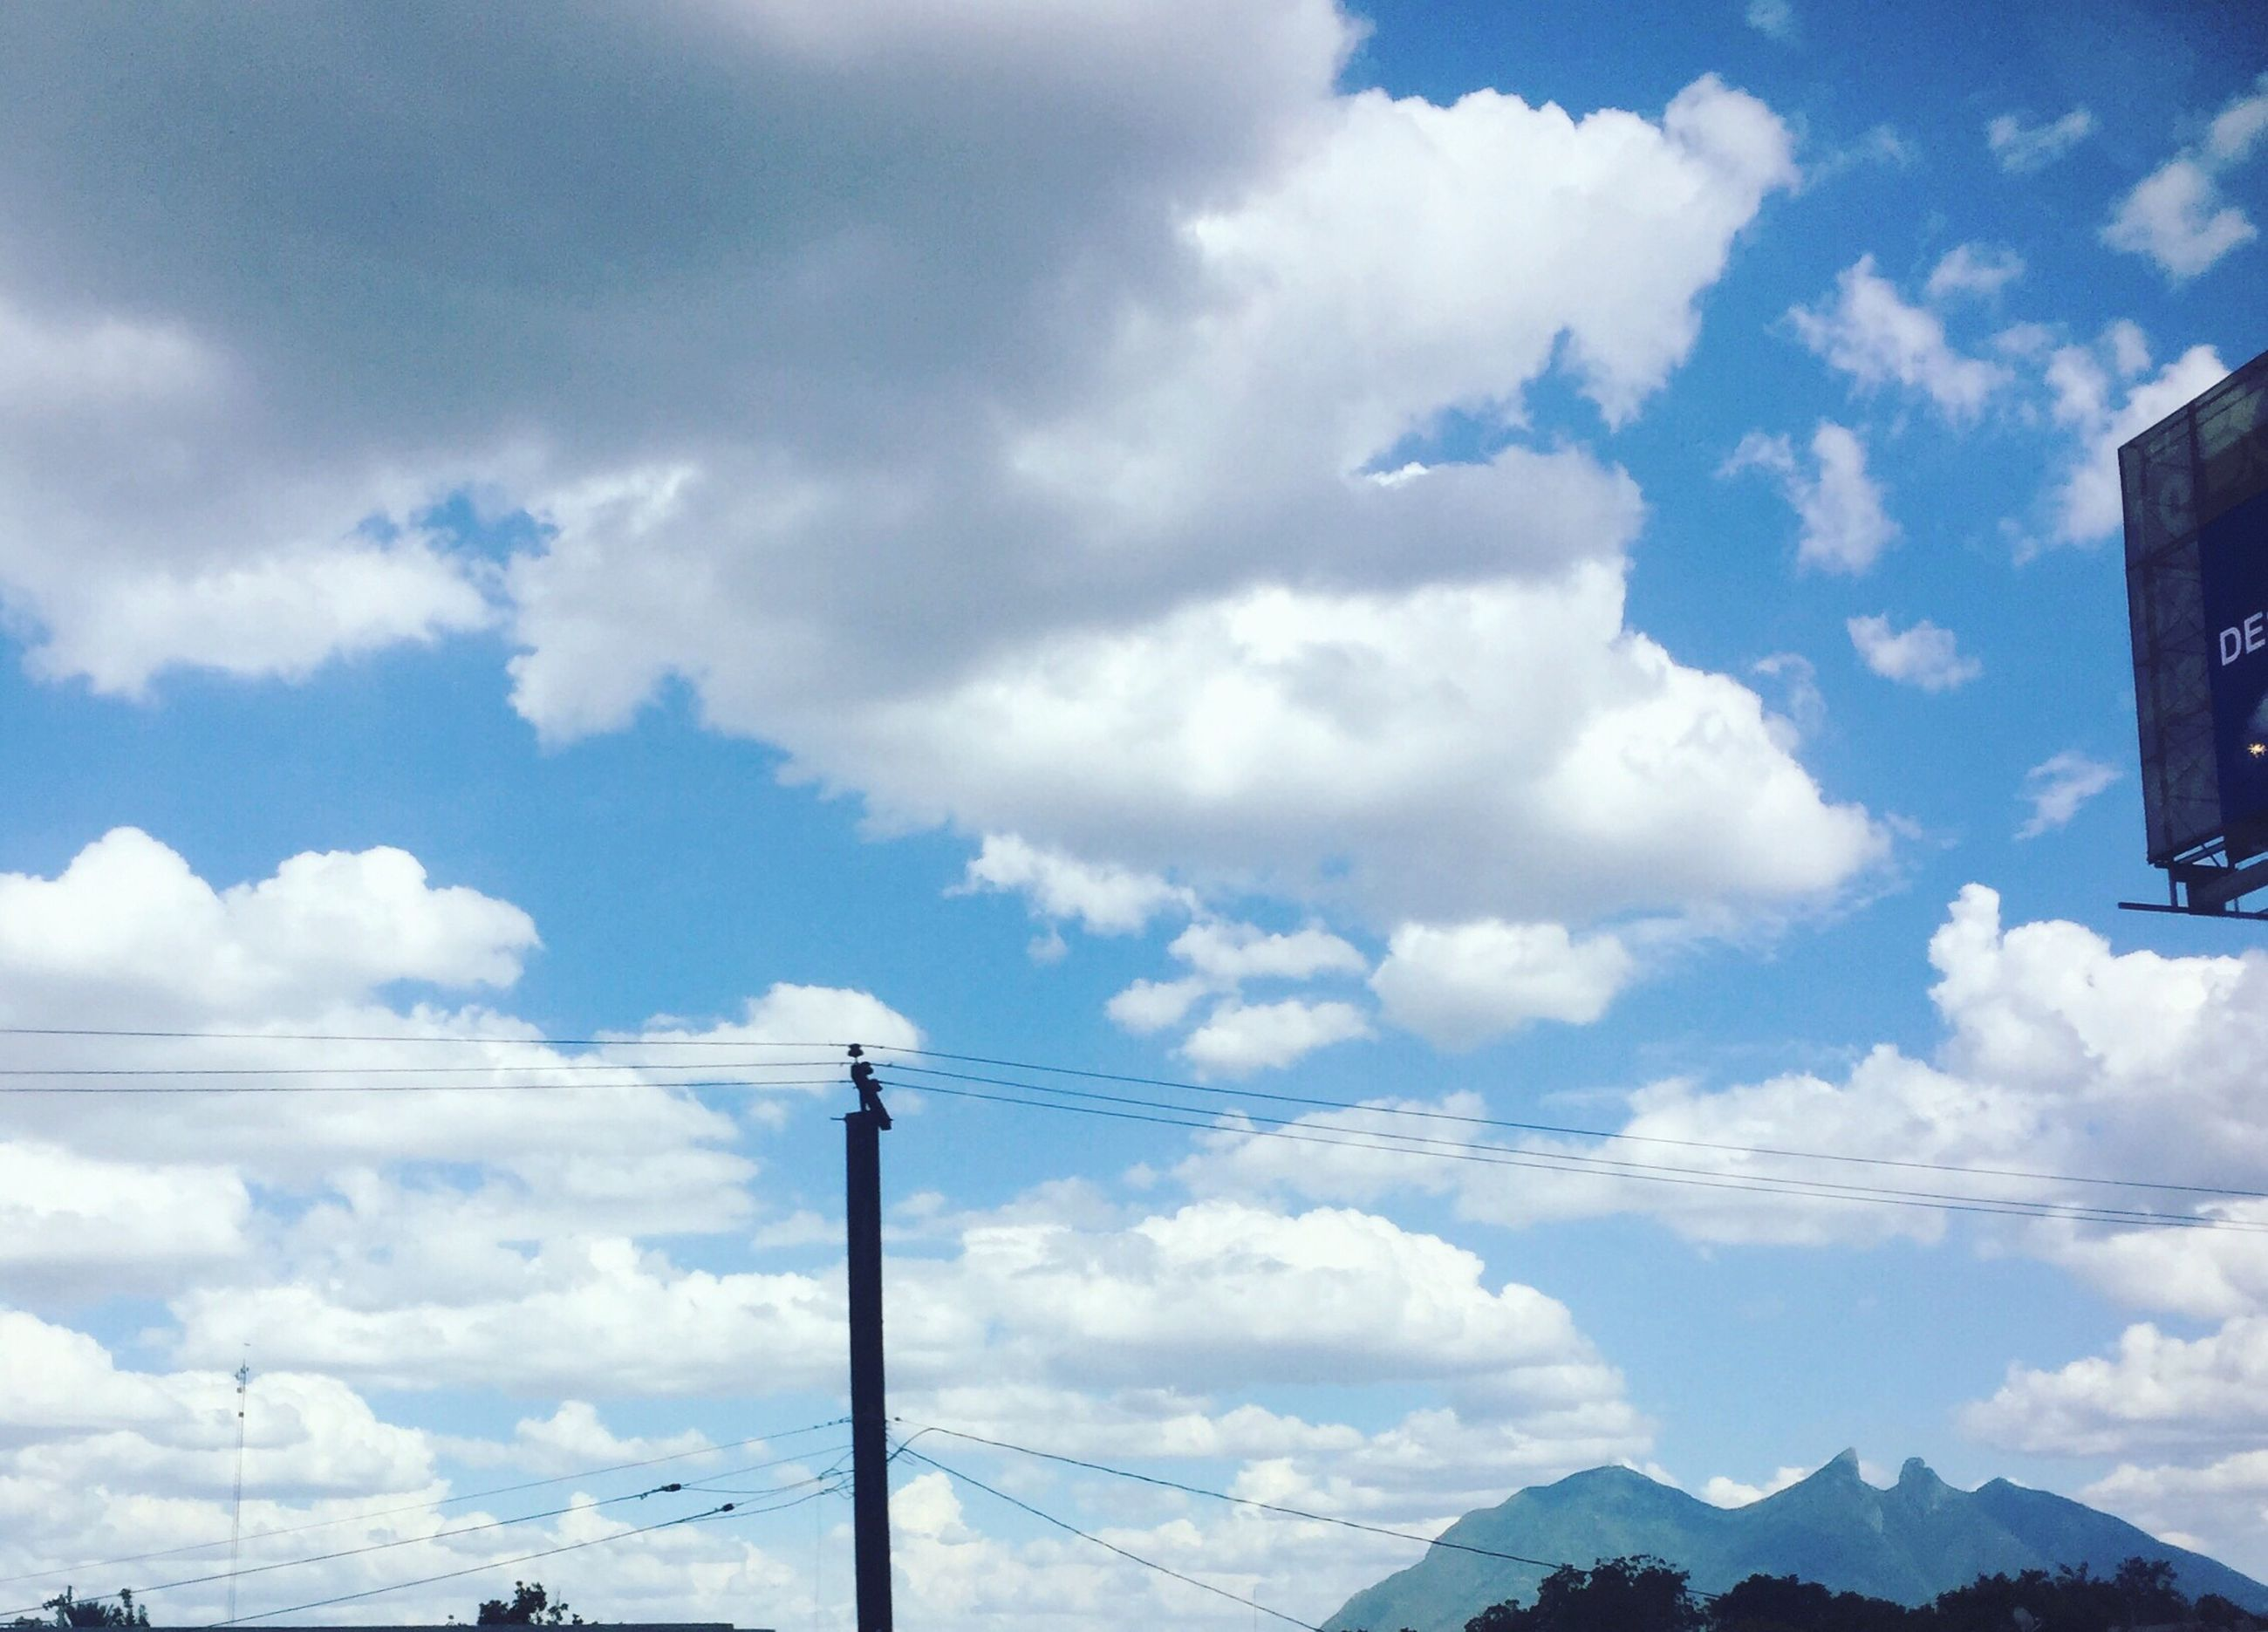 sky, cloud - sky, mountain, power line, low angle view, cloudy, cloud, cable, power supply, scenics, tranquility, beauty in nature, nature, mountain range, weather, tranquil scene, landscape, day, blue, outdoors, power cable, no people, cloudscape, pole, non-urban scene, idyllic, overcast